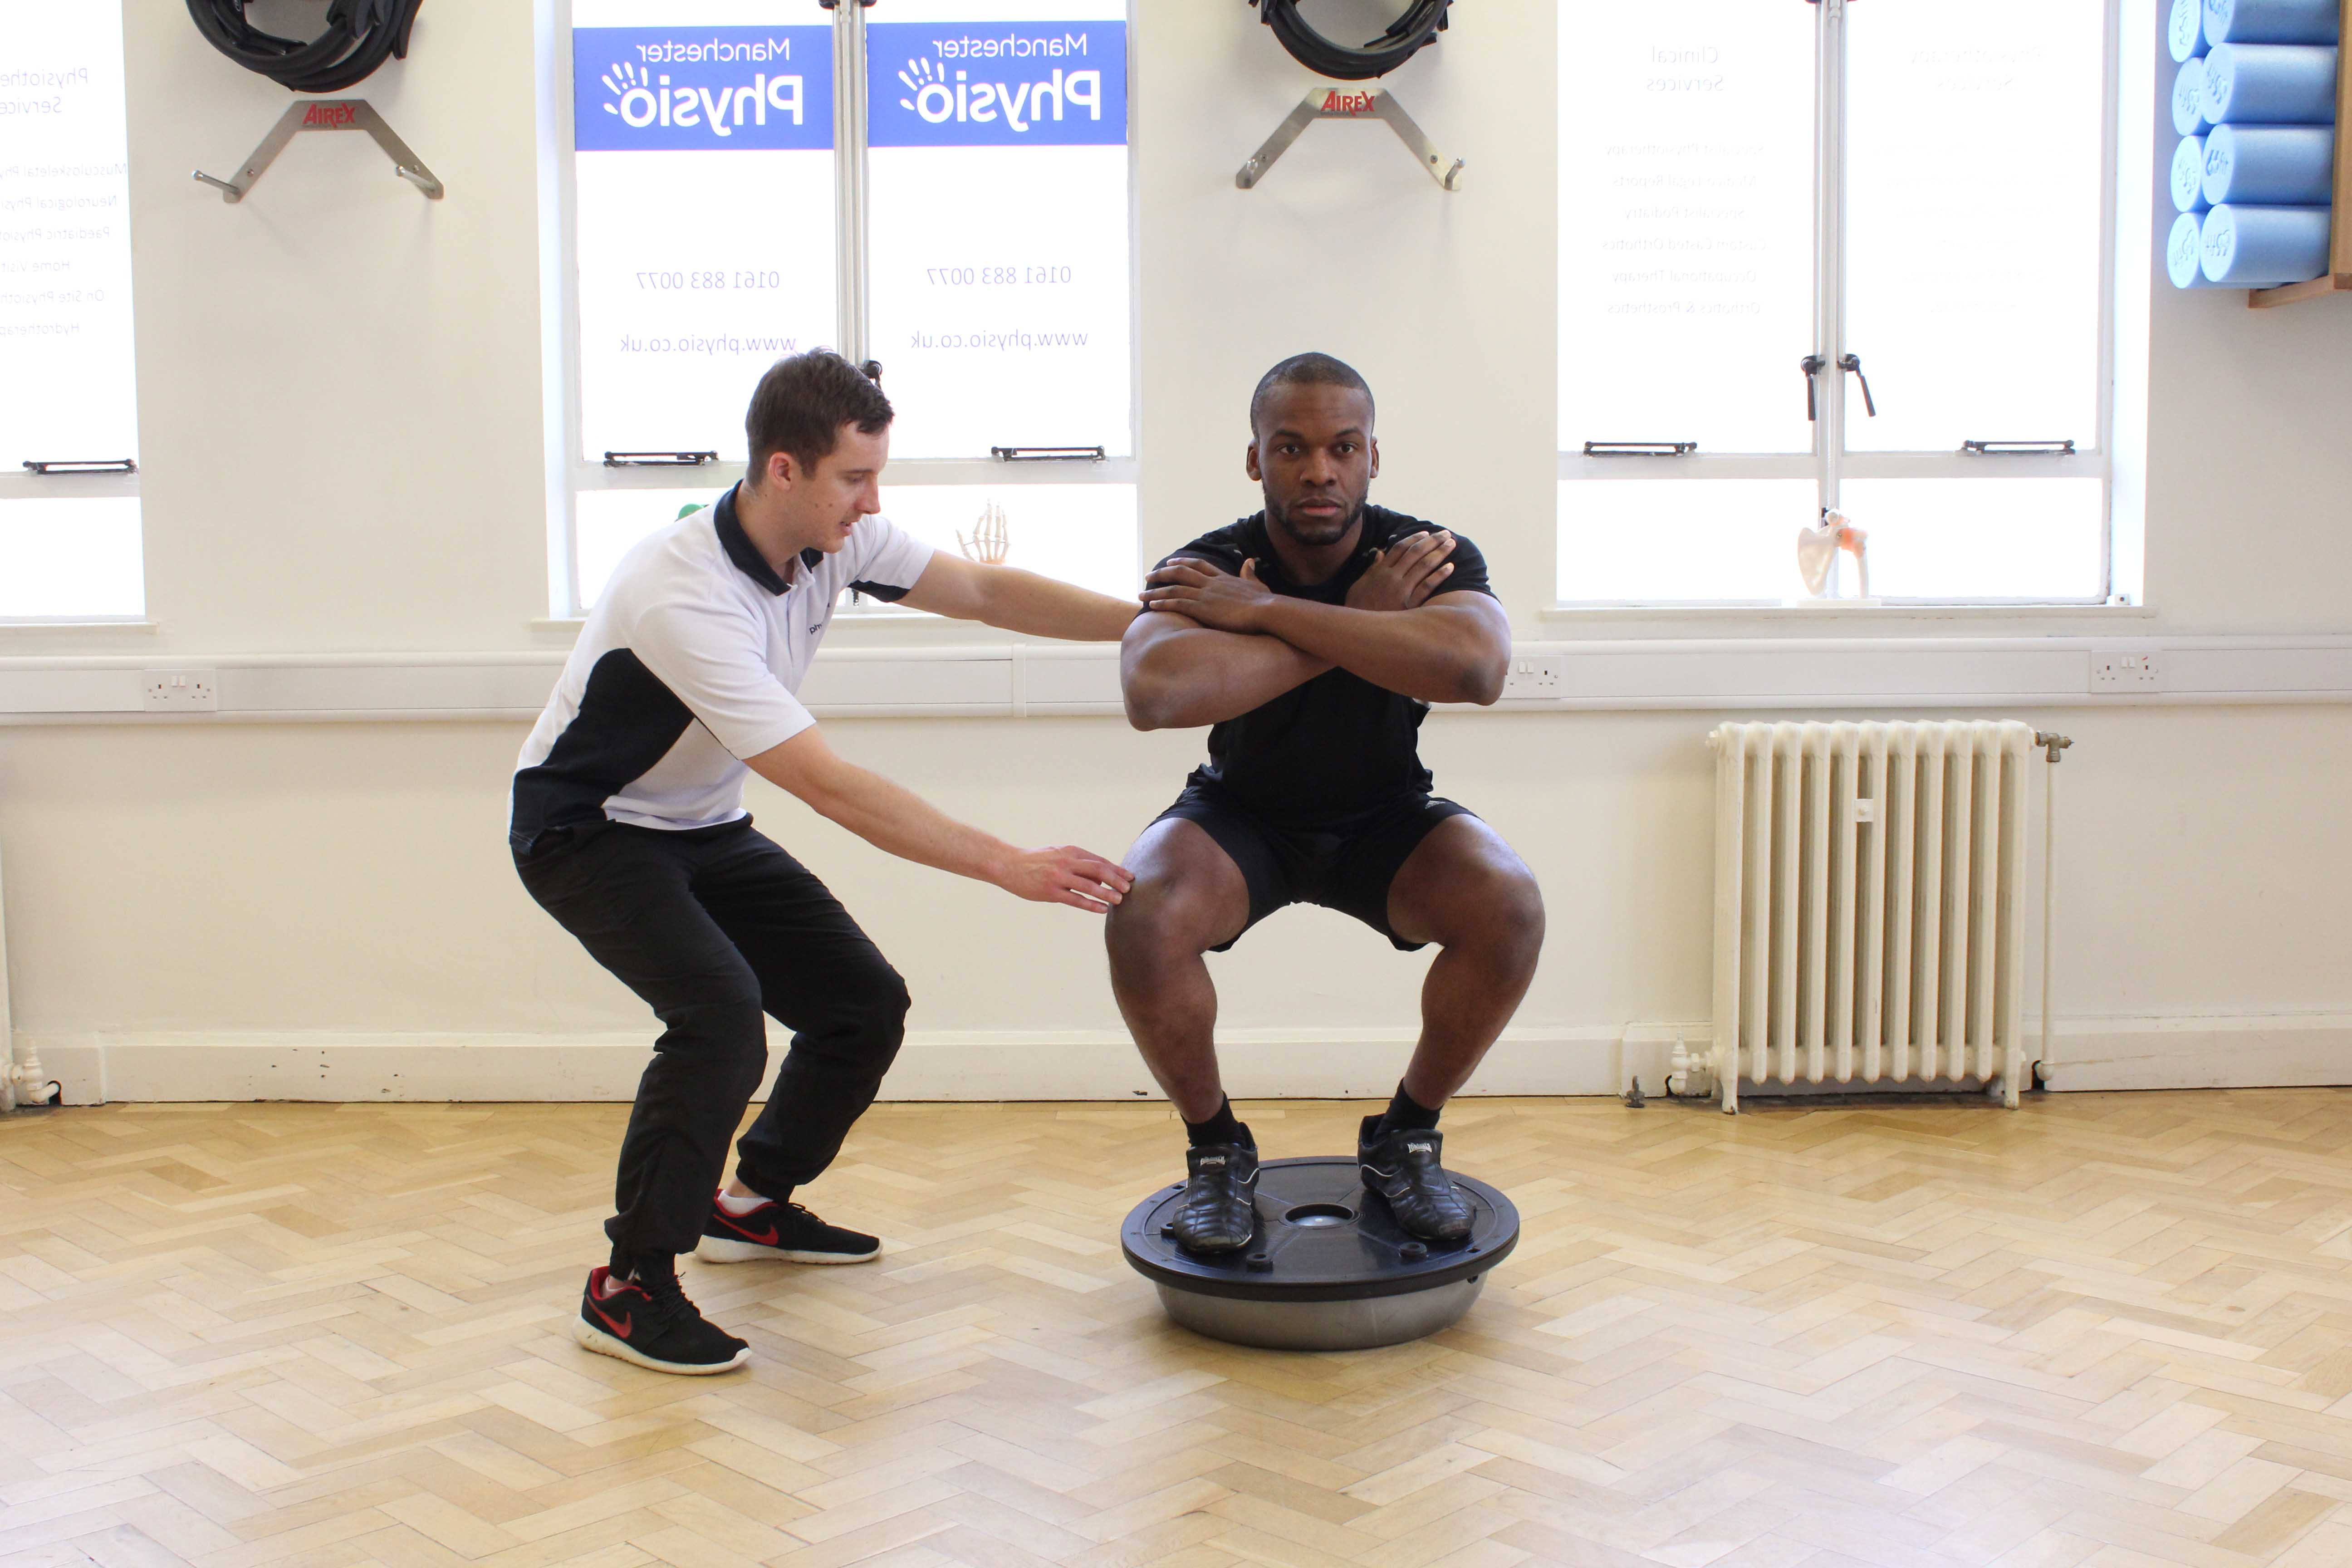 Stability training for the foot and ankle supervised by an experienced physiotherapist